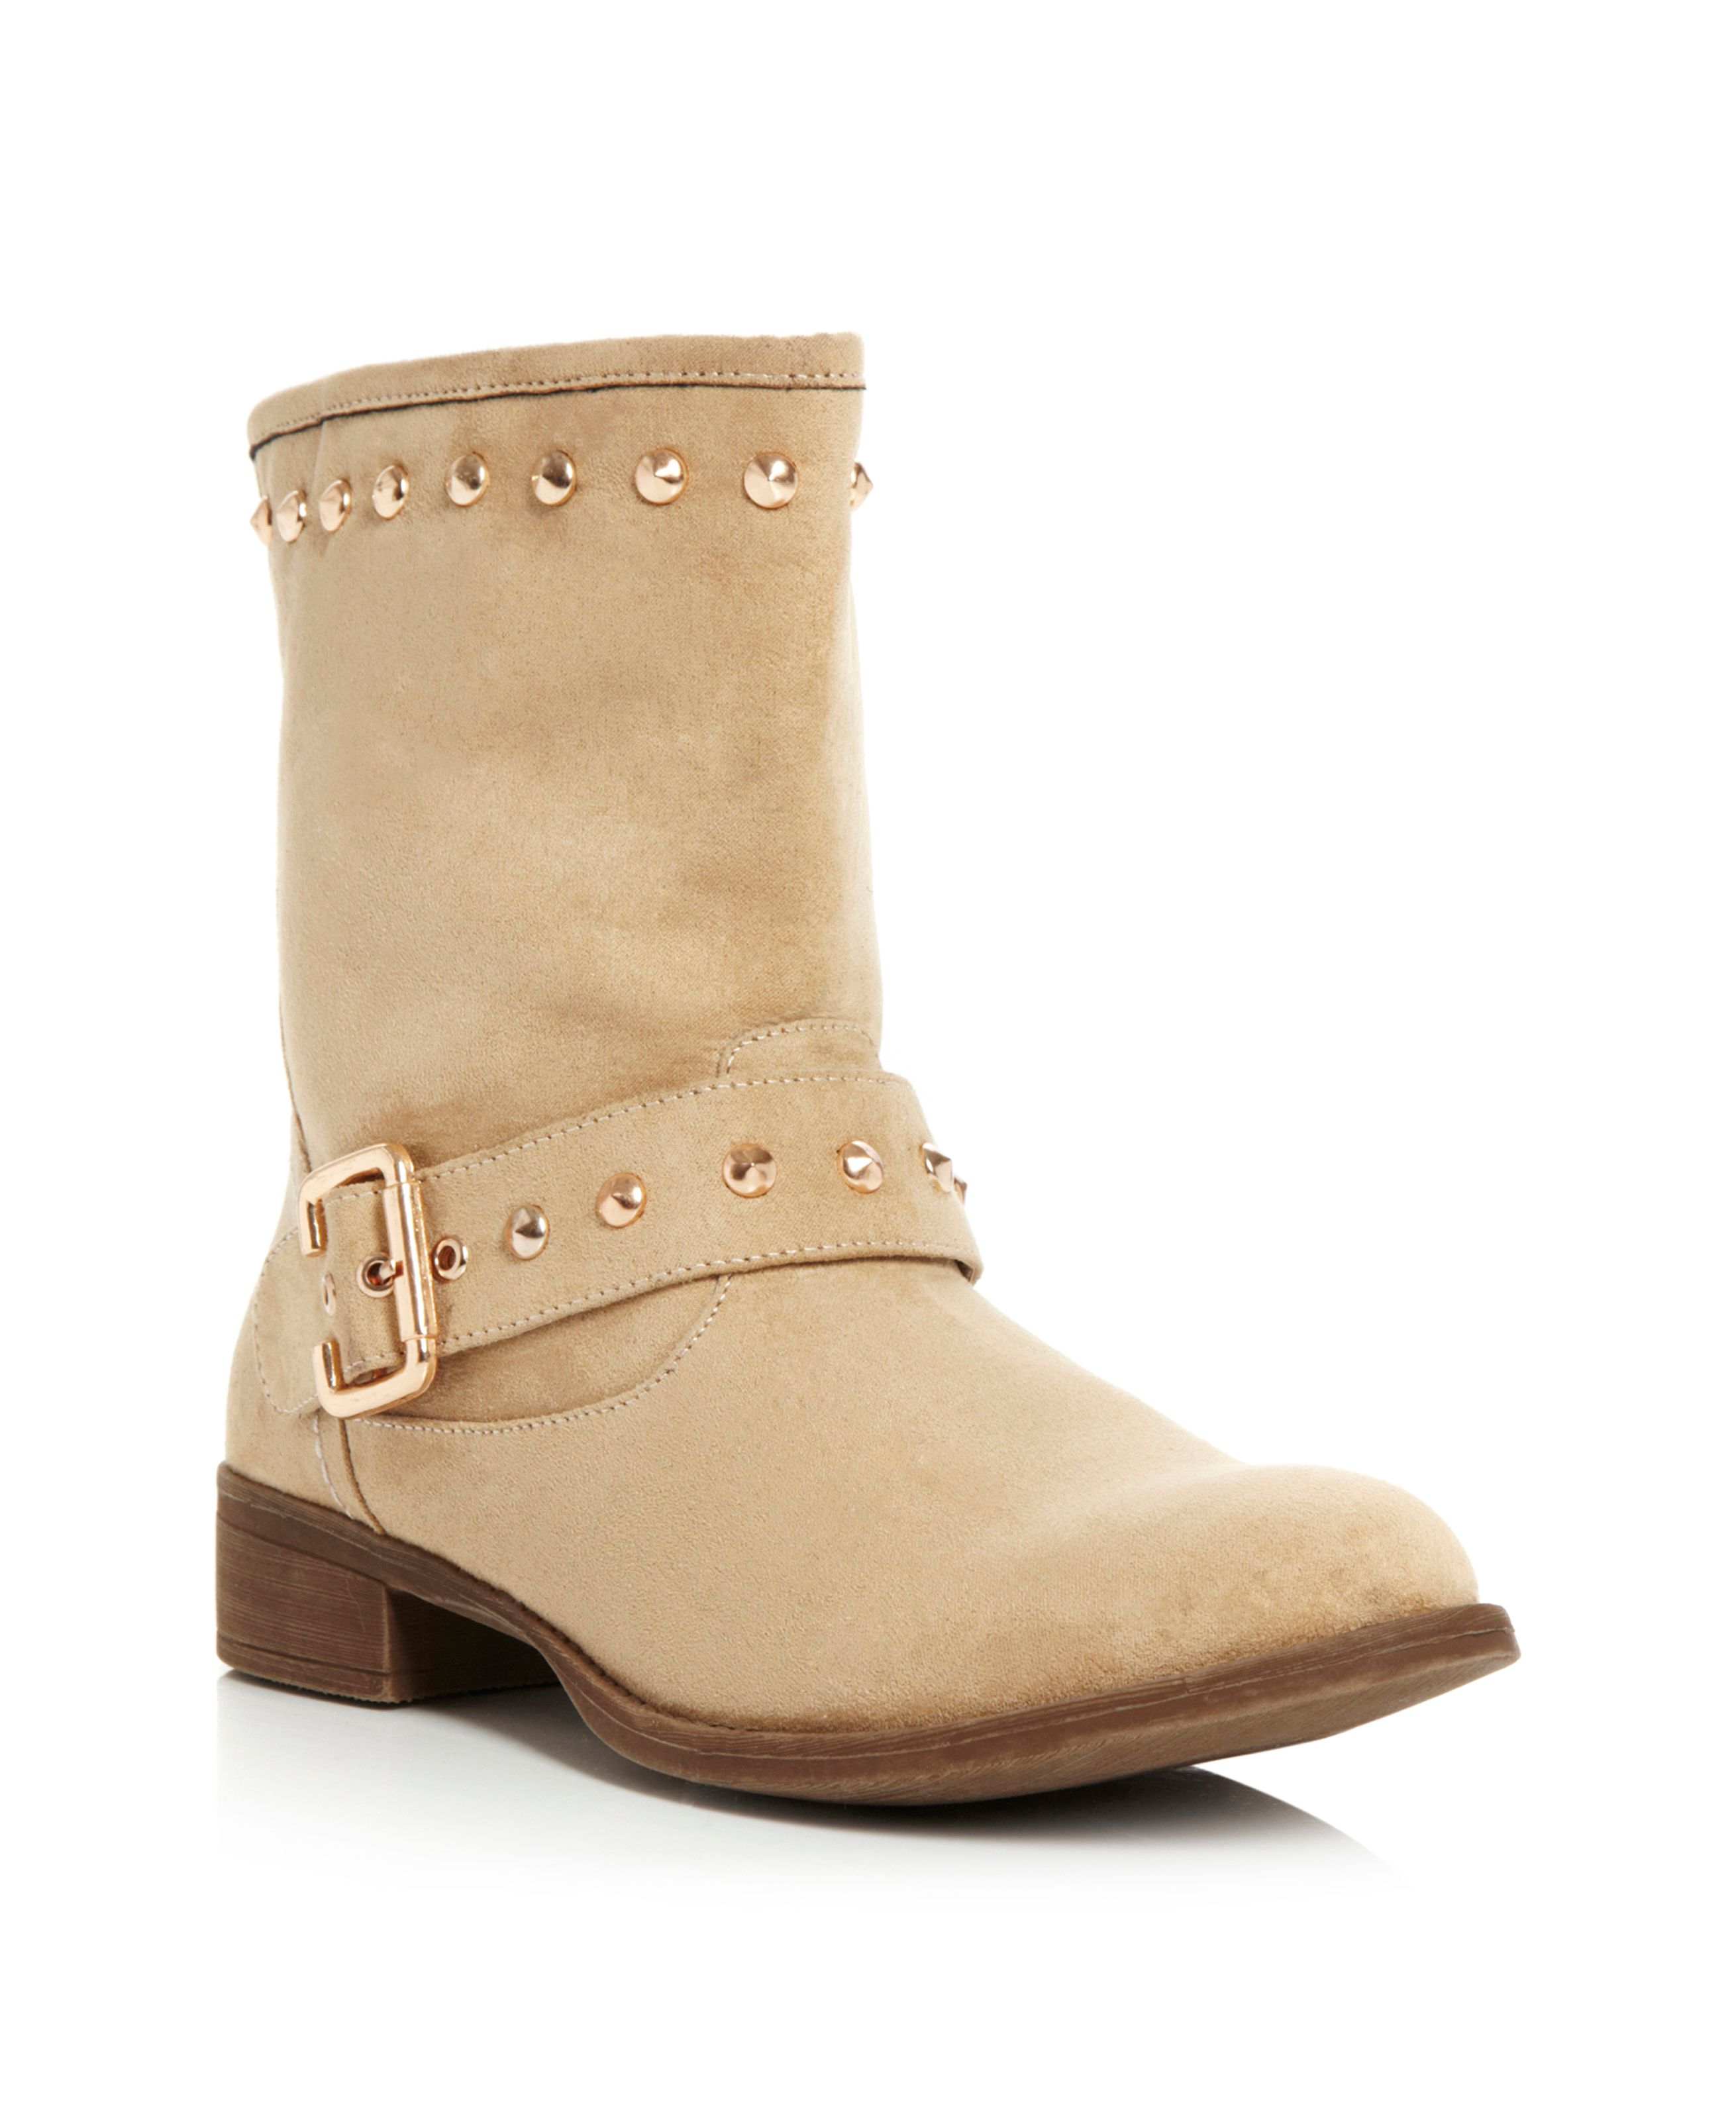 Preeda Studded Buckle Ankle Boots